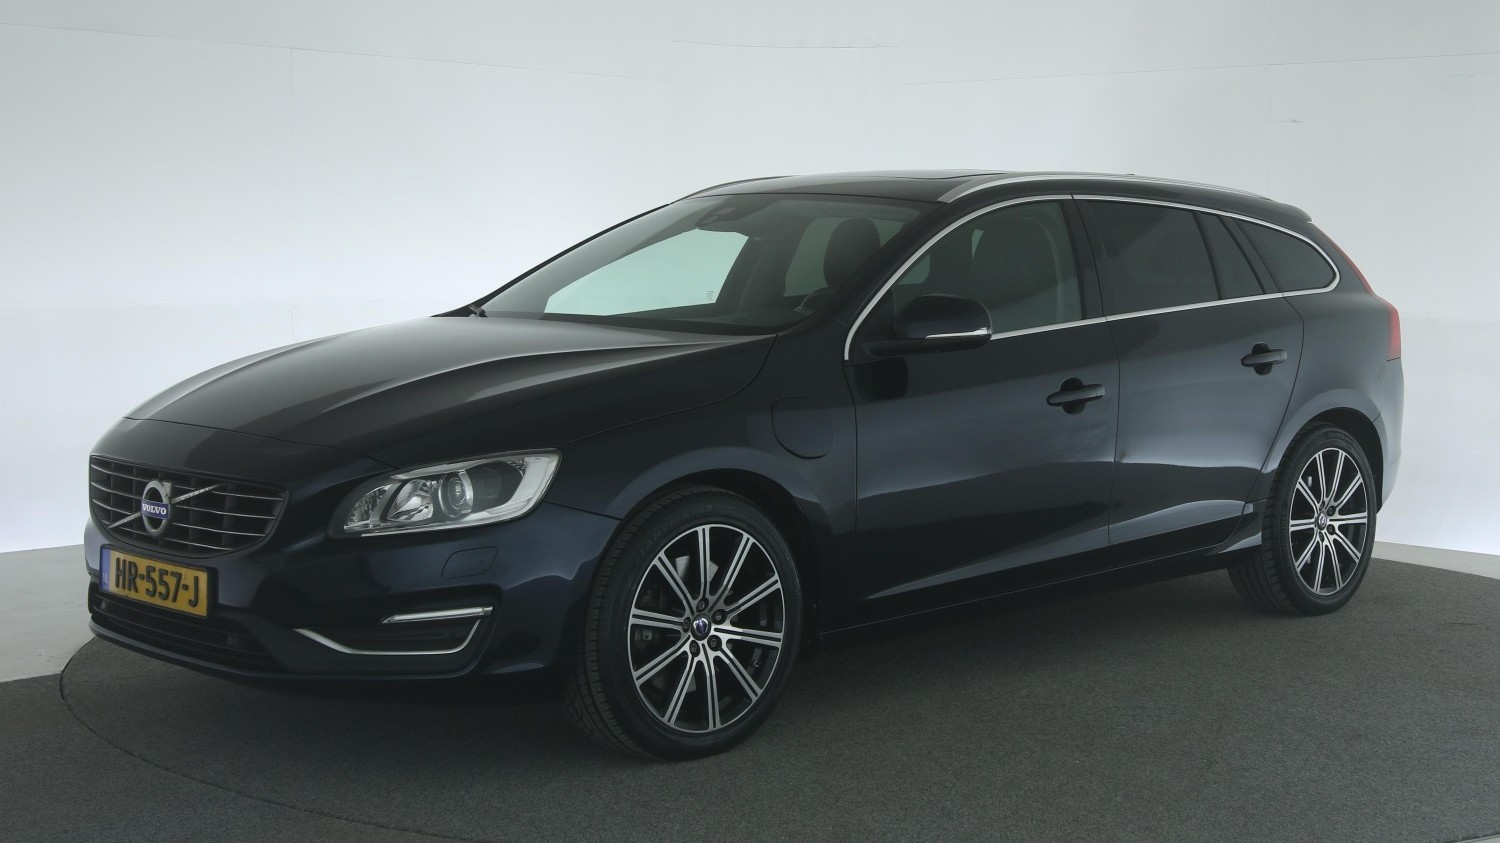 Volvo V60 Station 2015 HR-557-J 1